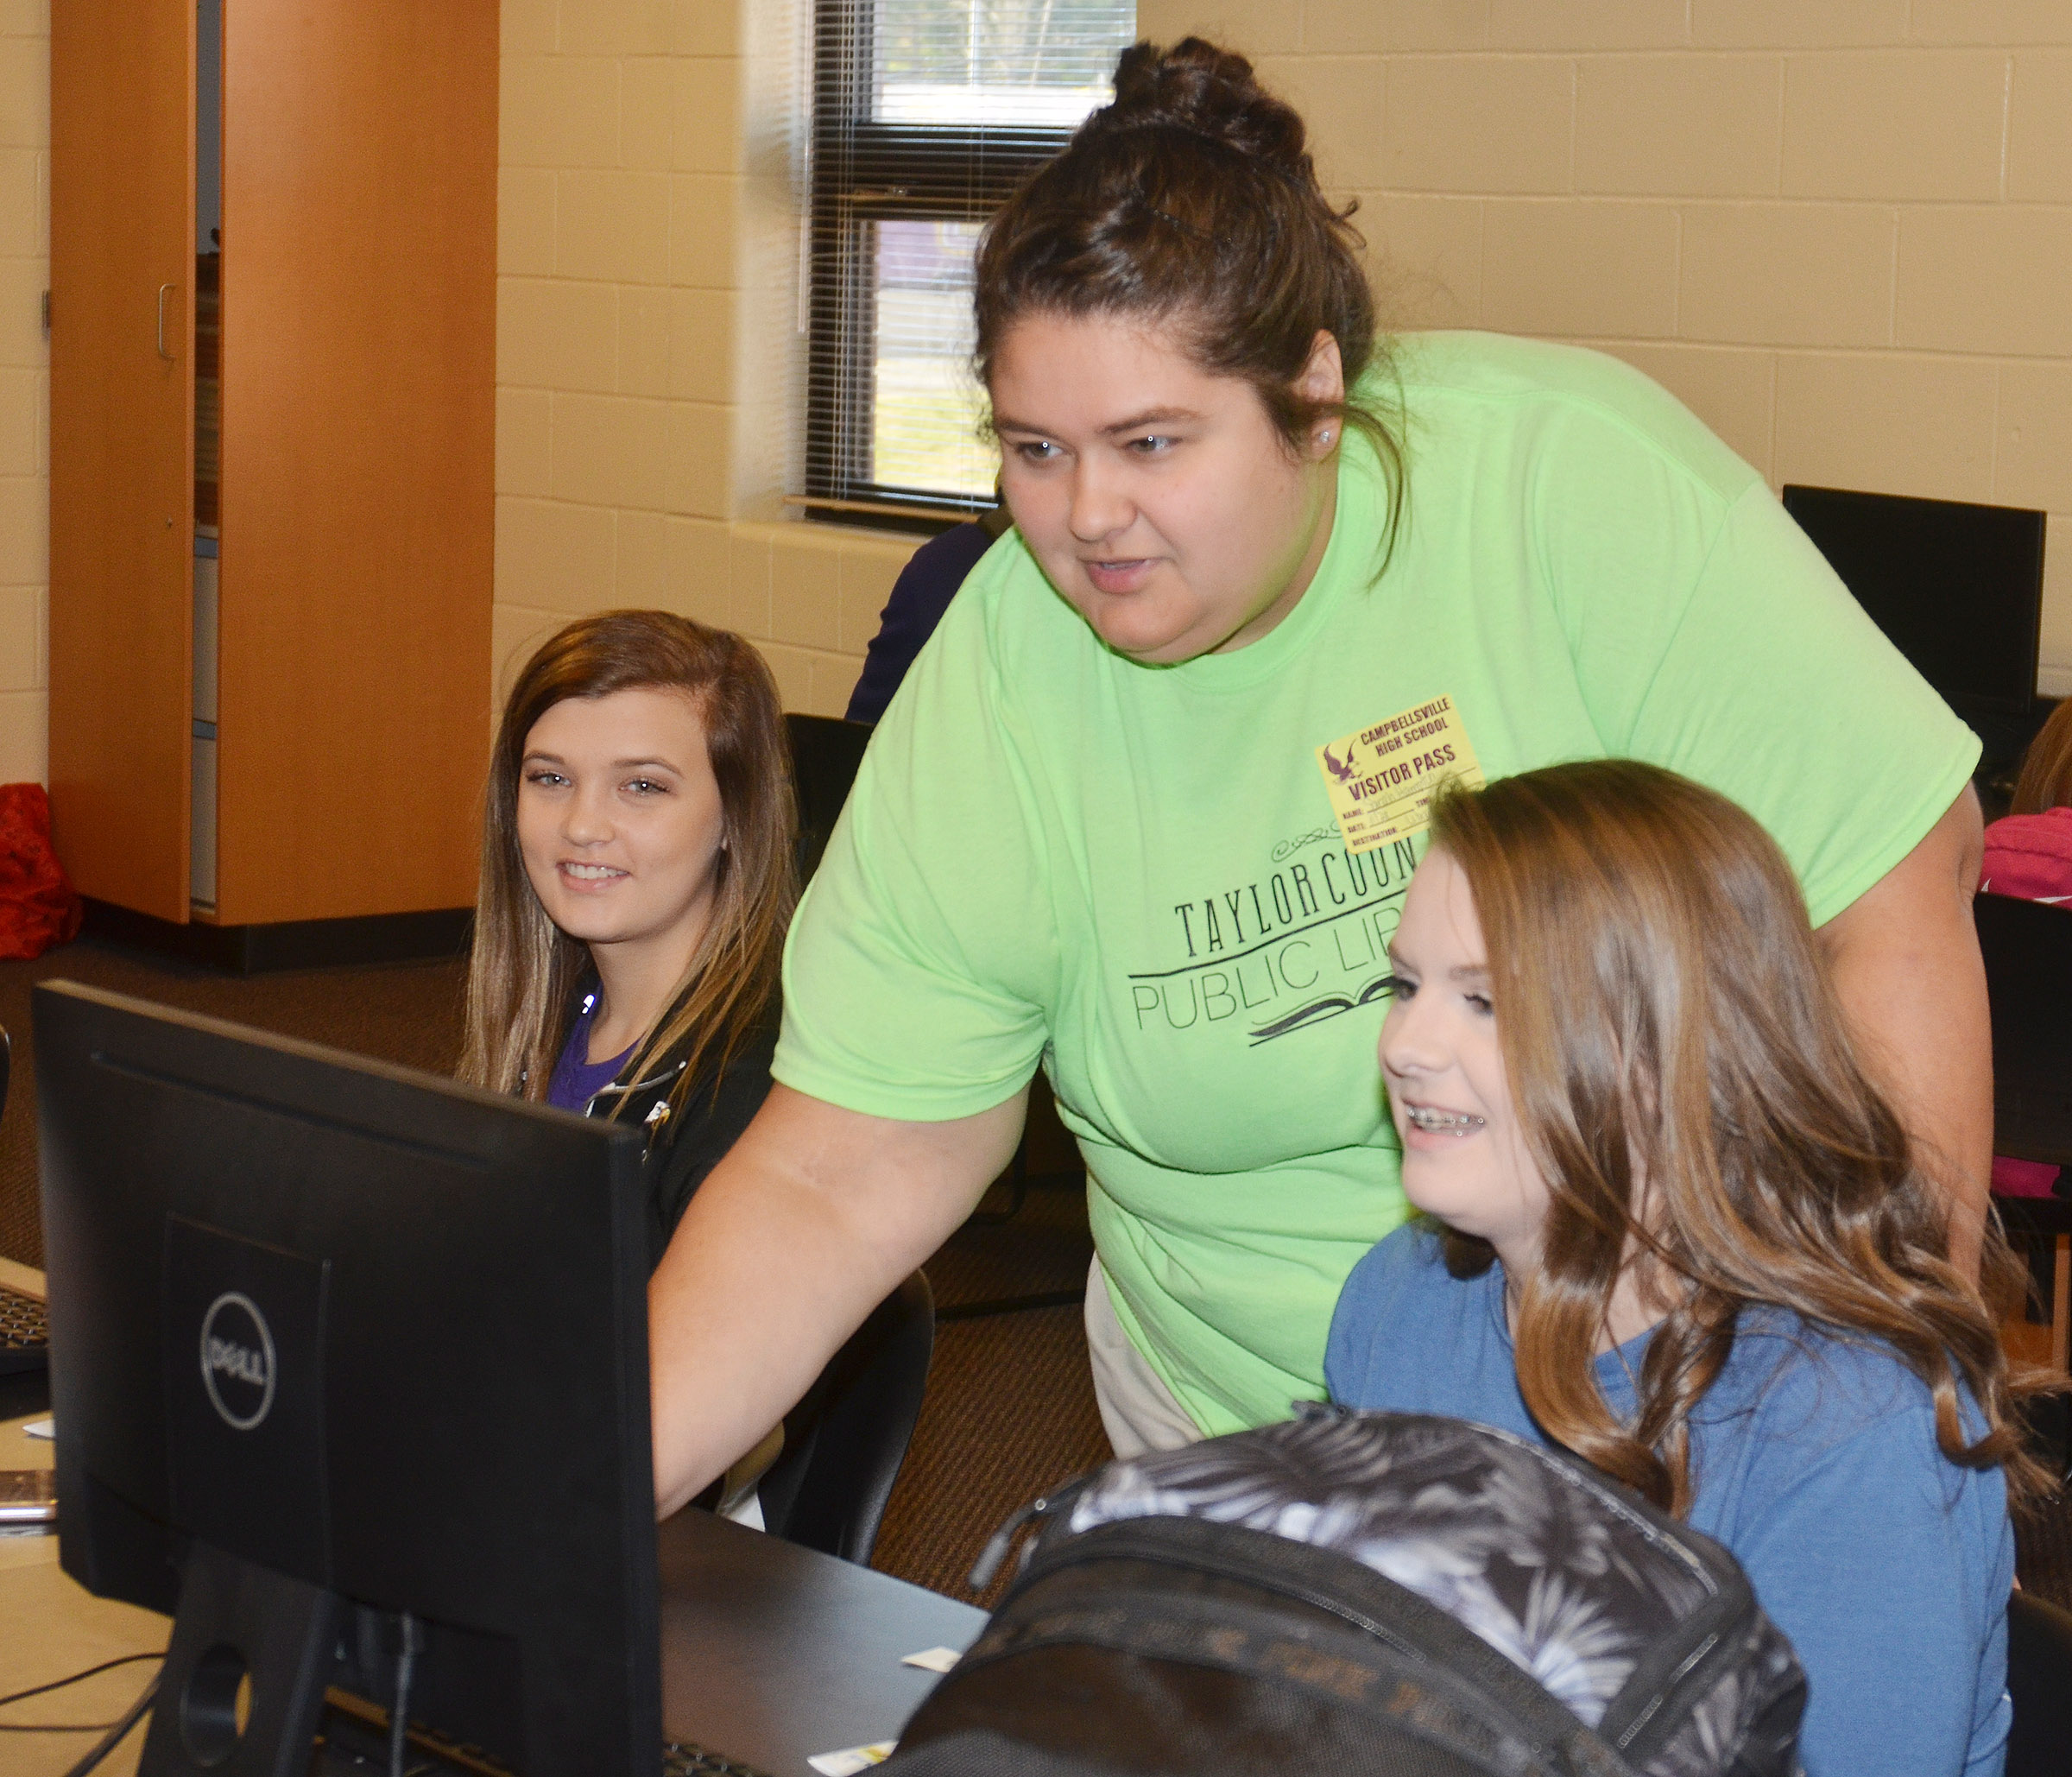 Sarah Hampton of Taylor County Public Library helps CHS freshmen Carly Adams, at left, and Taylor Knight register for access to the library's free digital services.